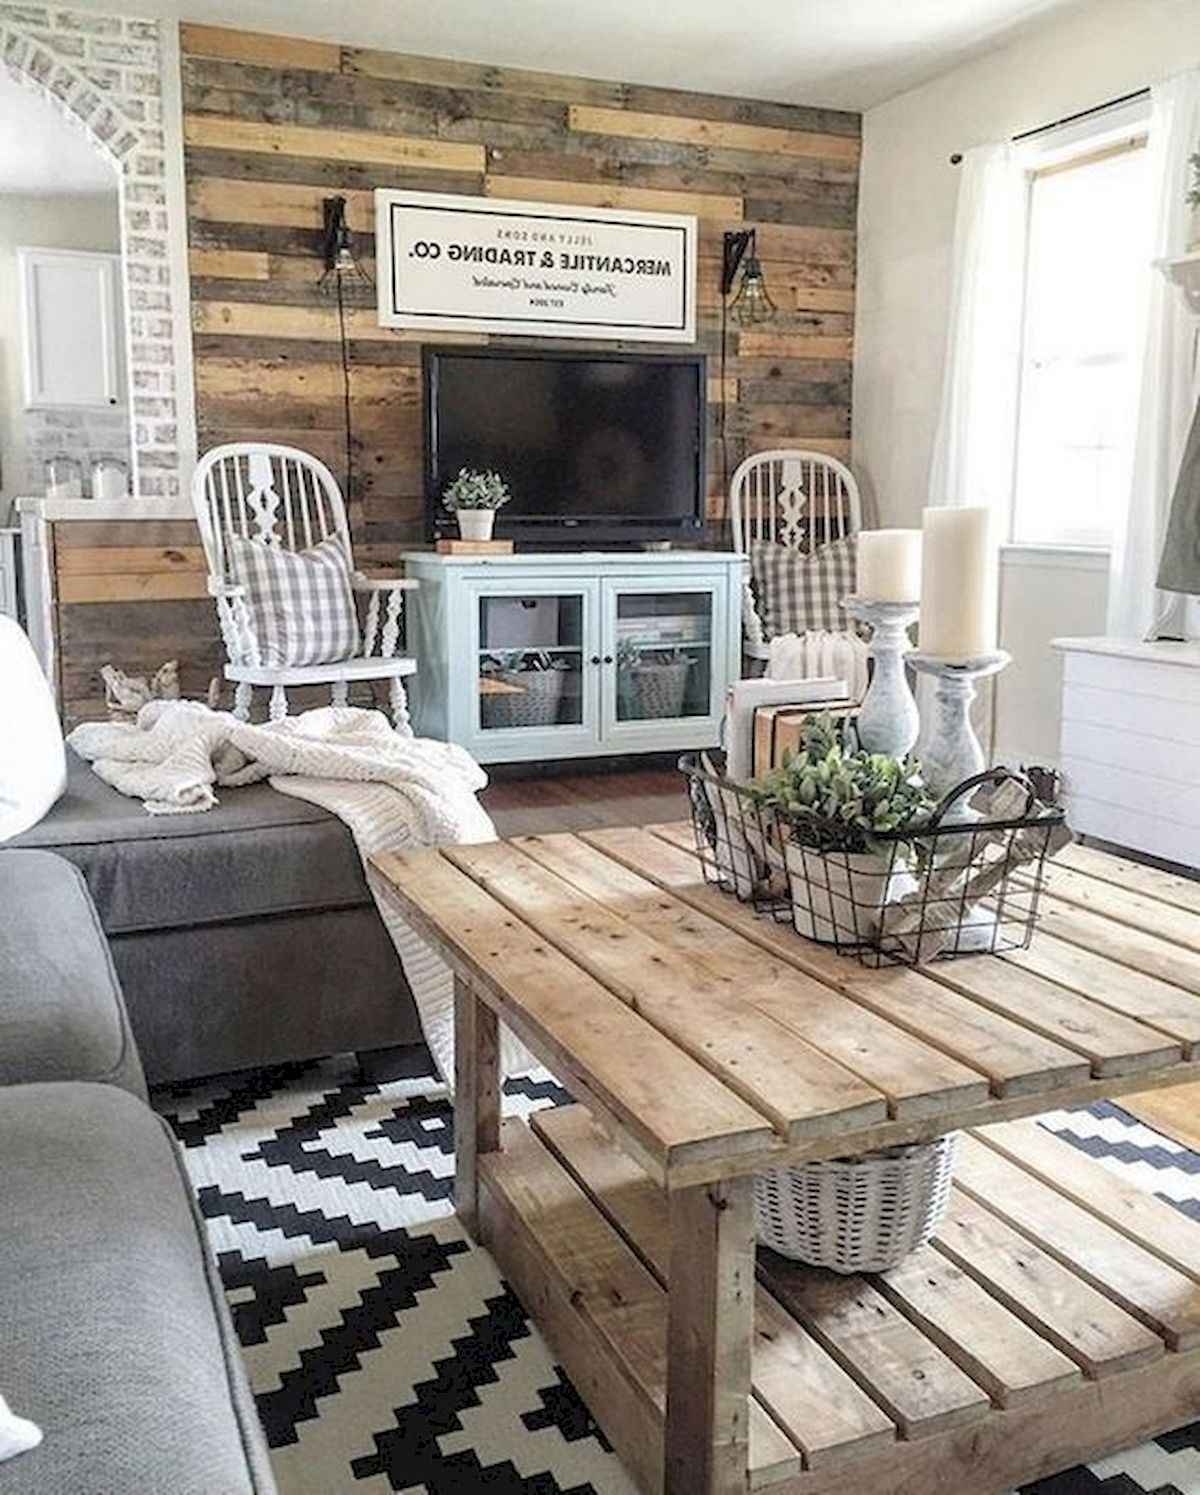 14 Small Living Room Decorating Ideas: 33 Best Farmhouse Living Room TV Stand Design Ideas (14